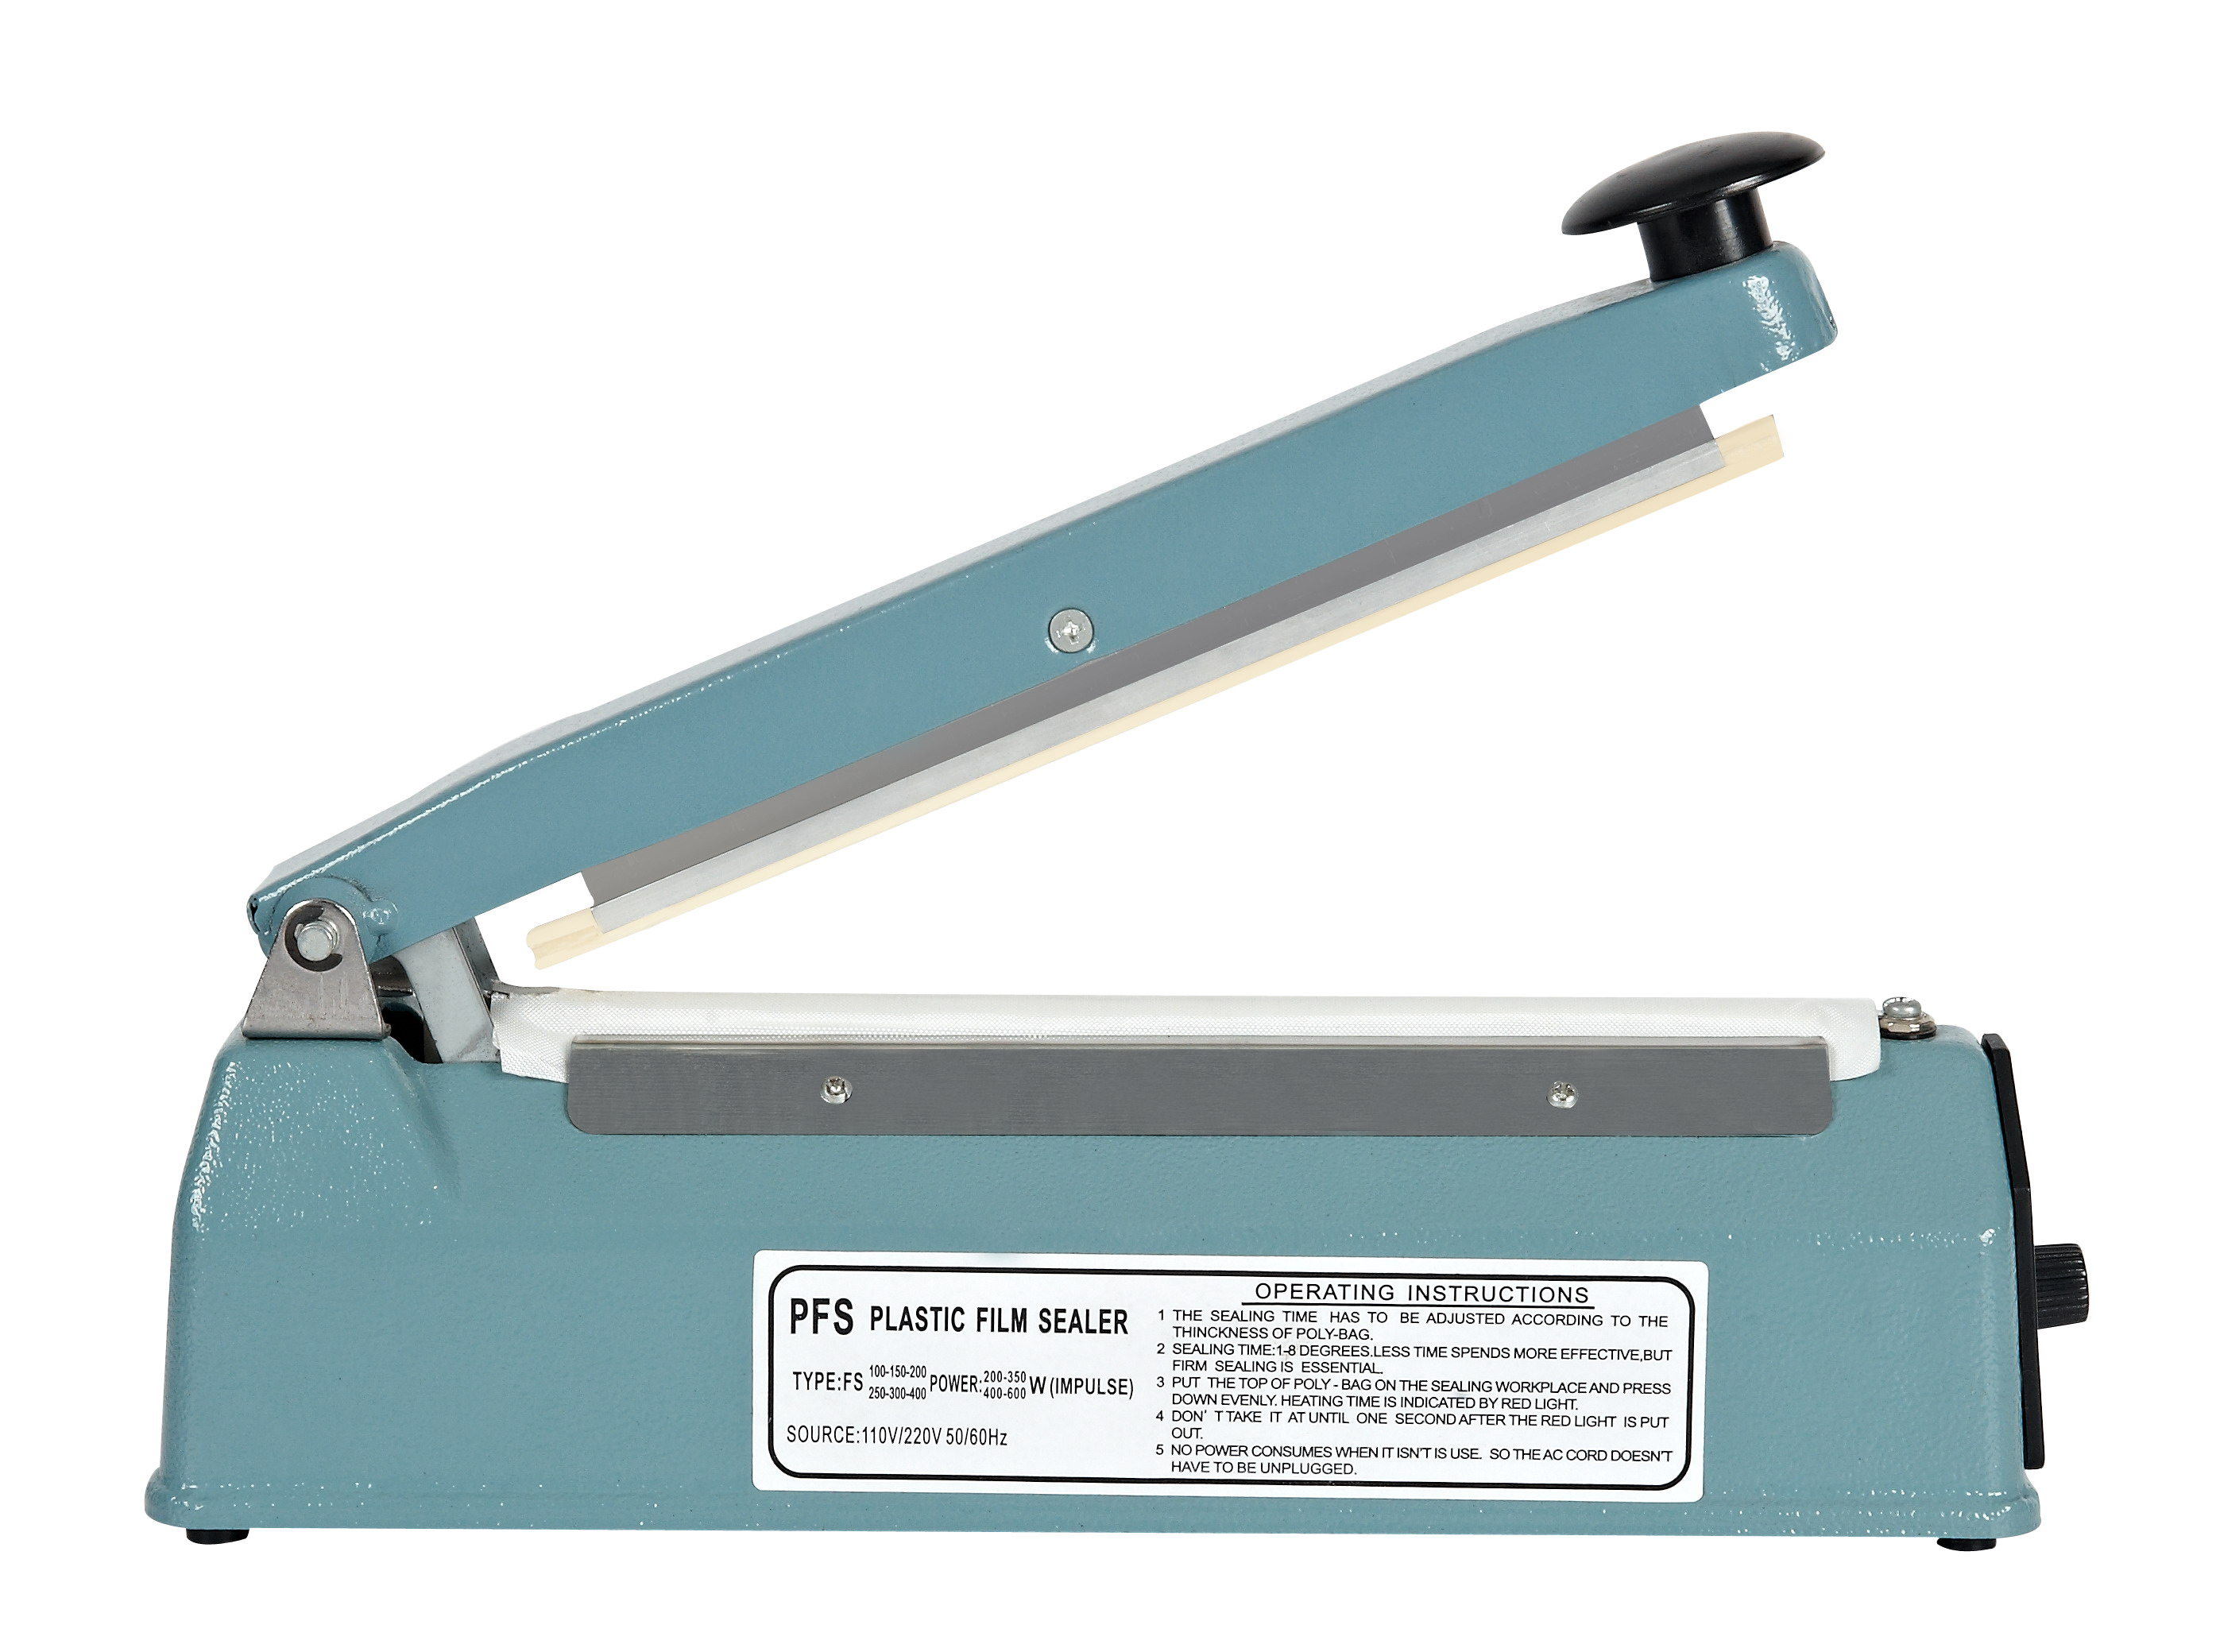 <b>Manual Impulse Heat Bag Sealing Sealer FS-200</b>